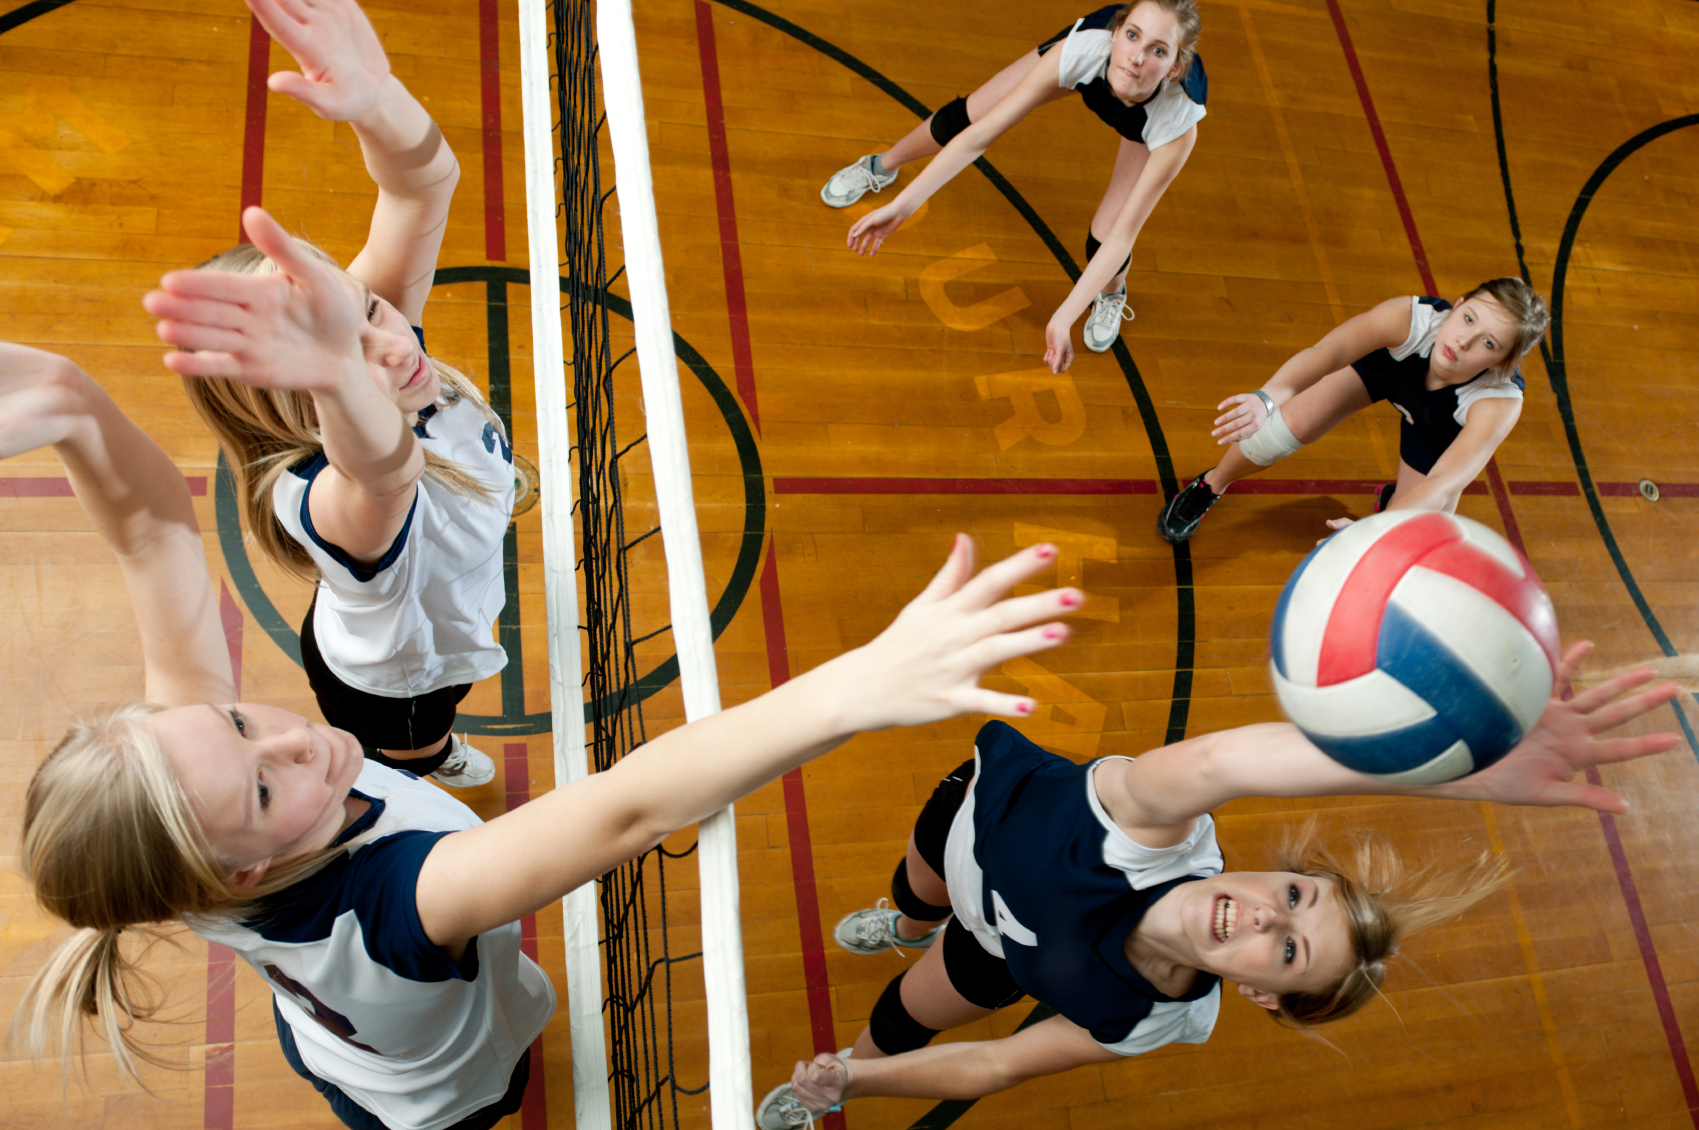 TeamSnap Volleyball Newsletter: July 2016